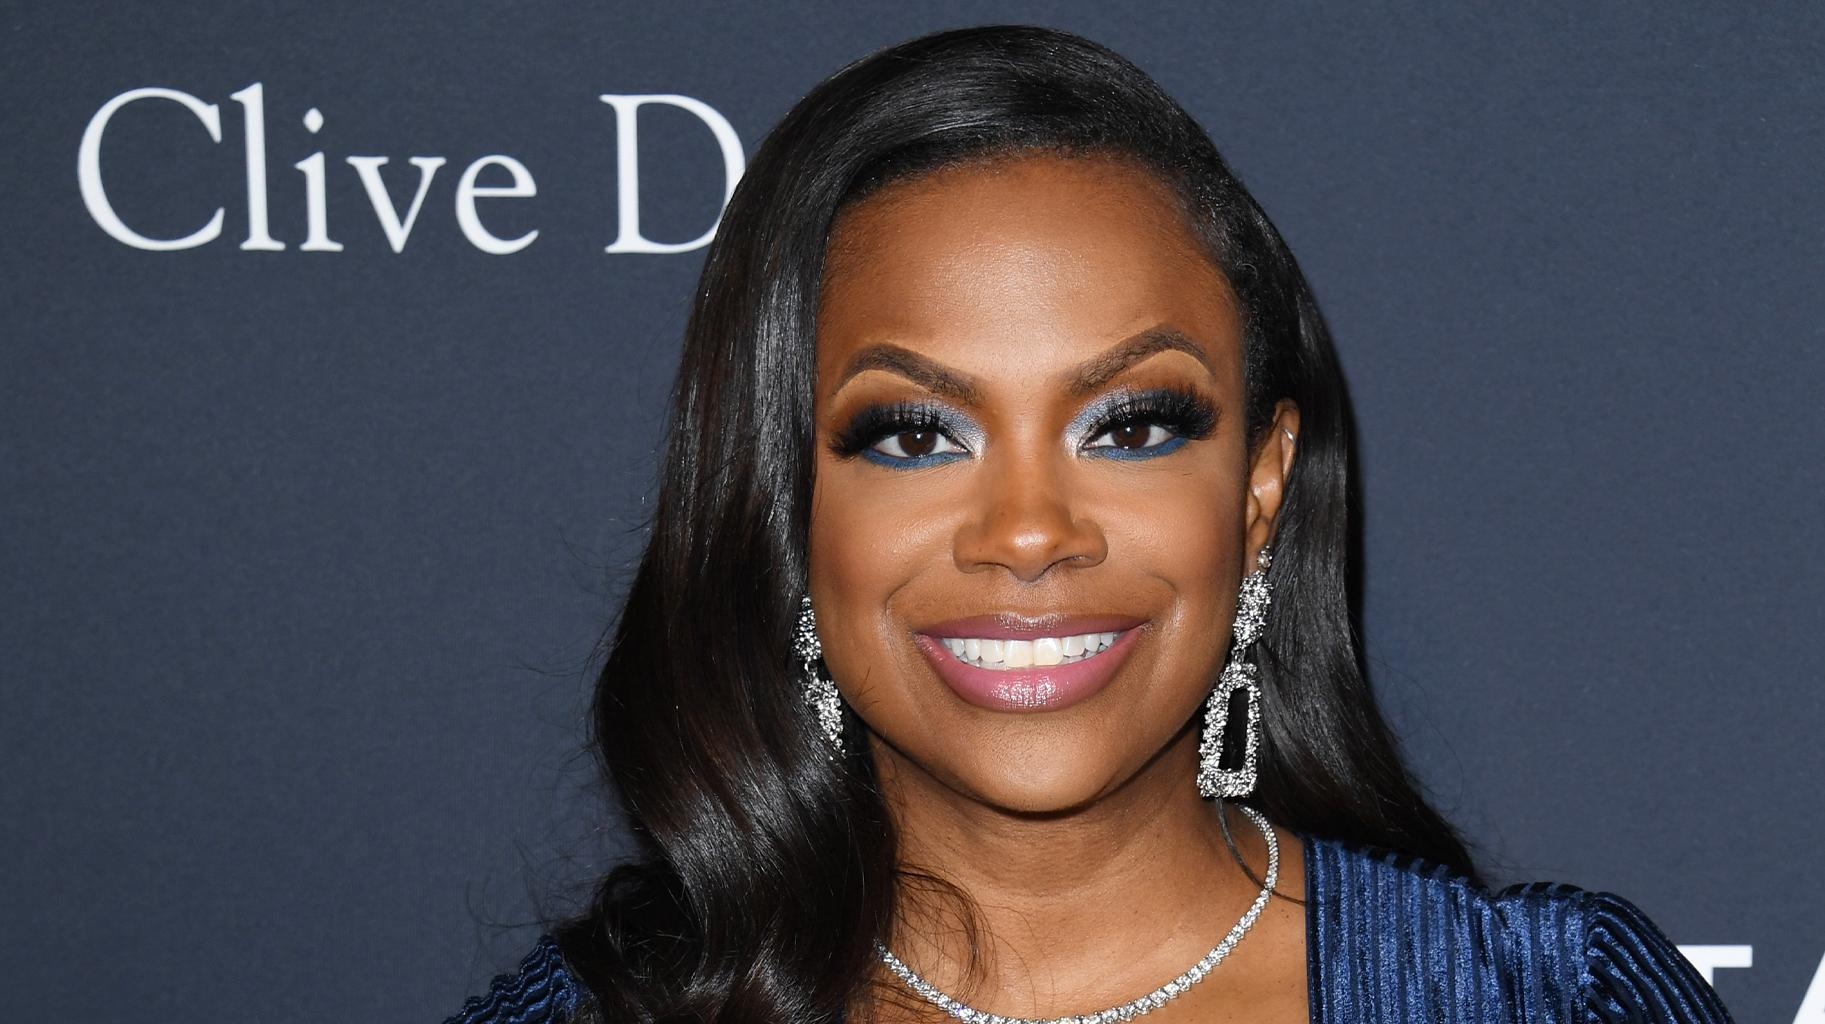 Kandi Burruss' Fans Praise Her Latest Outfit - Check It Out Here